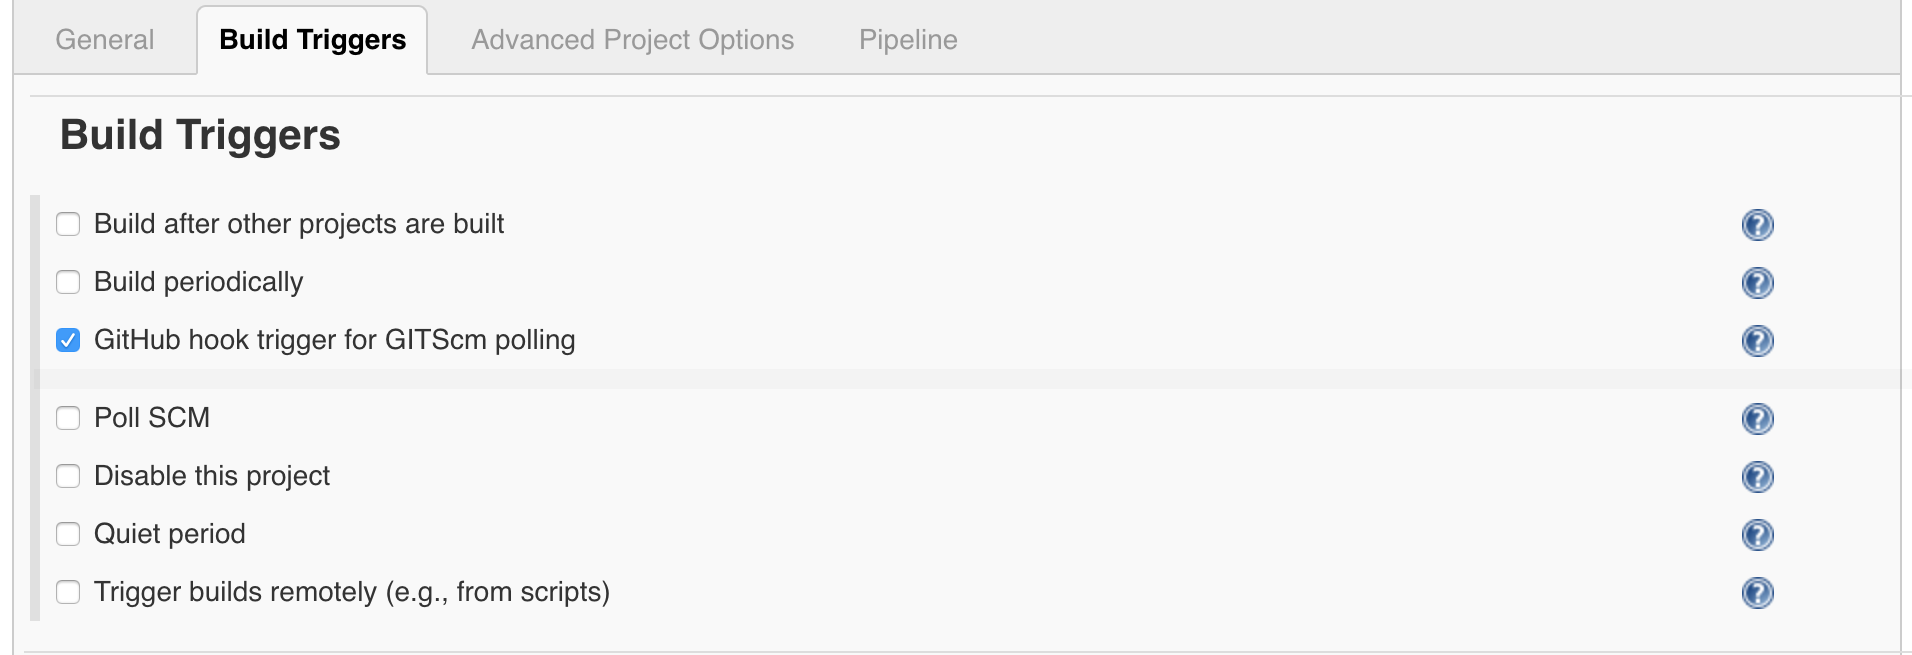 This feature enables builds after post-receive hooks in your GitHub repositories